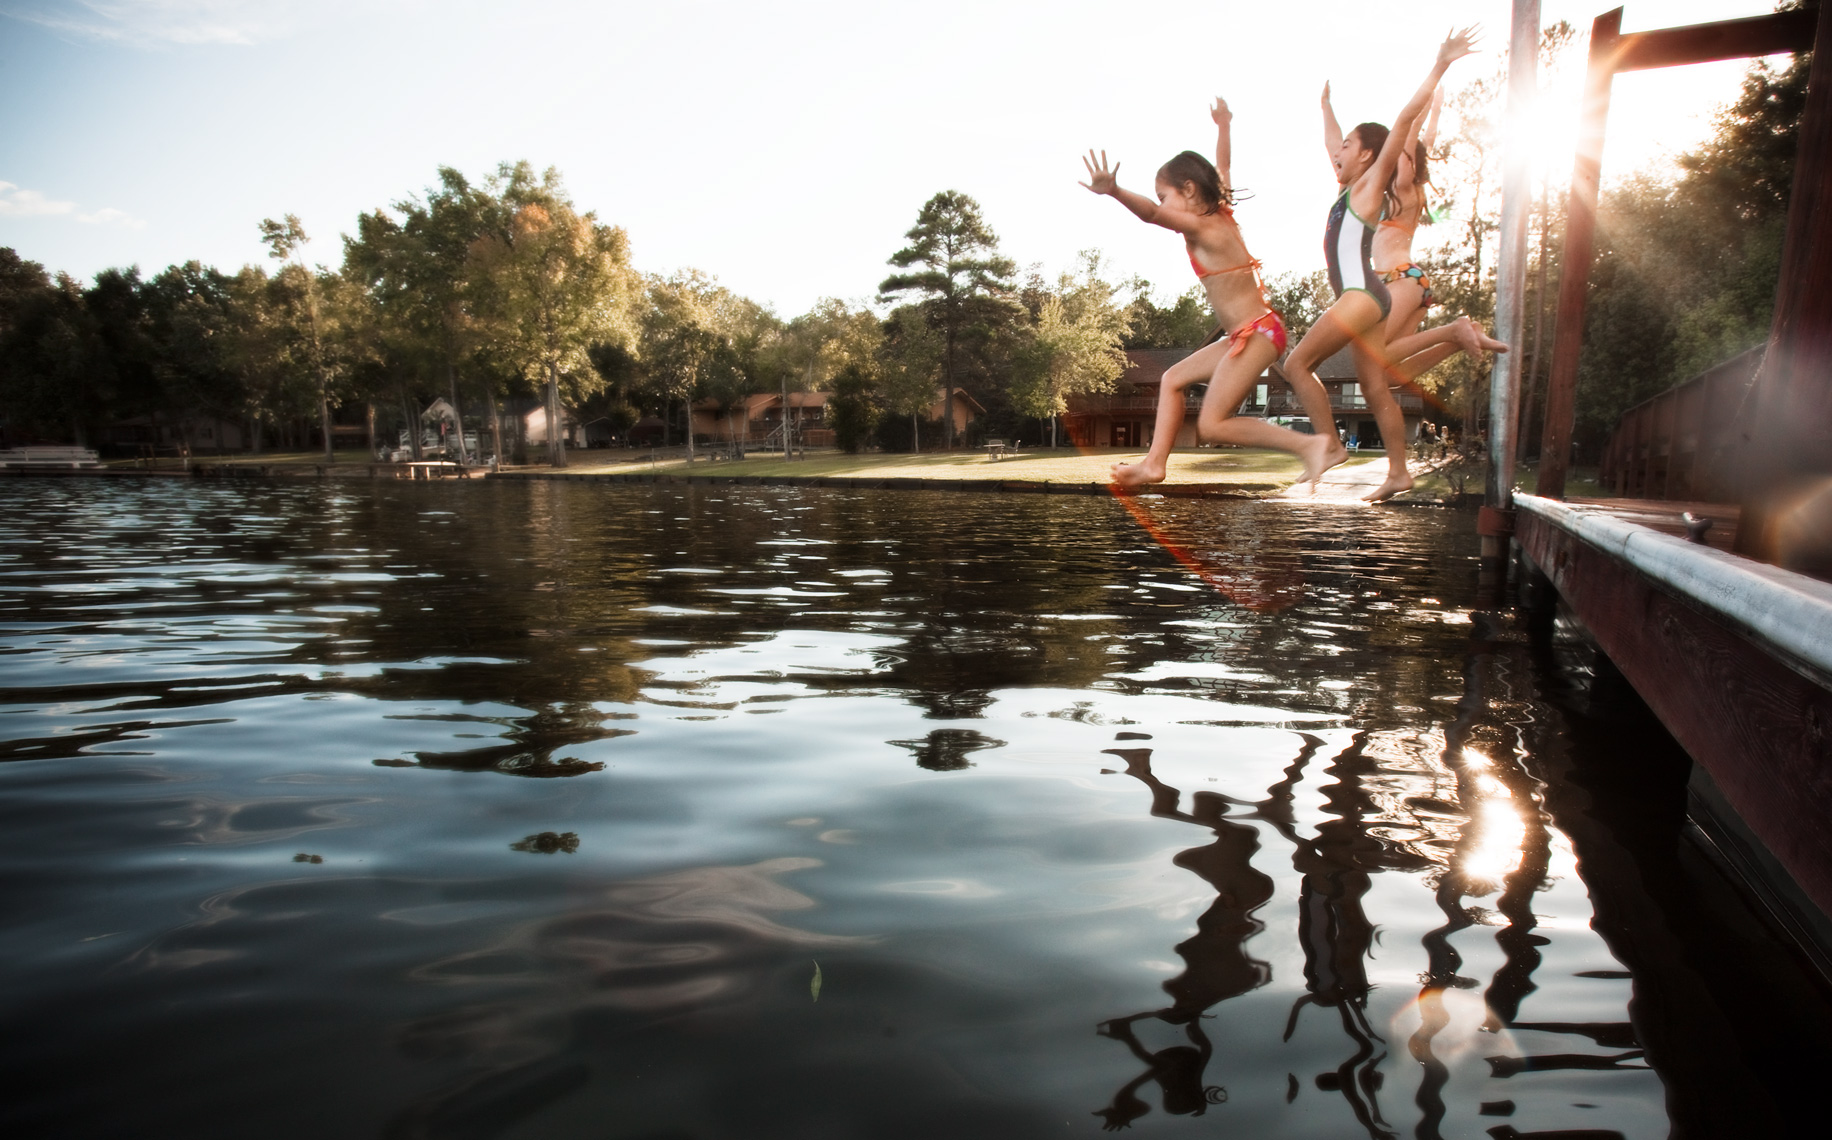 Lake-kids-jump-dock